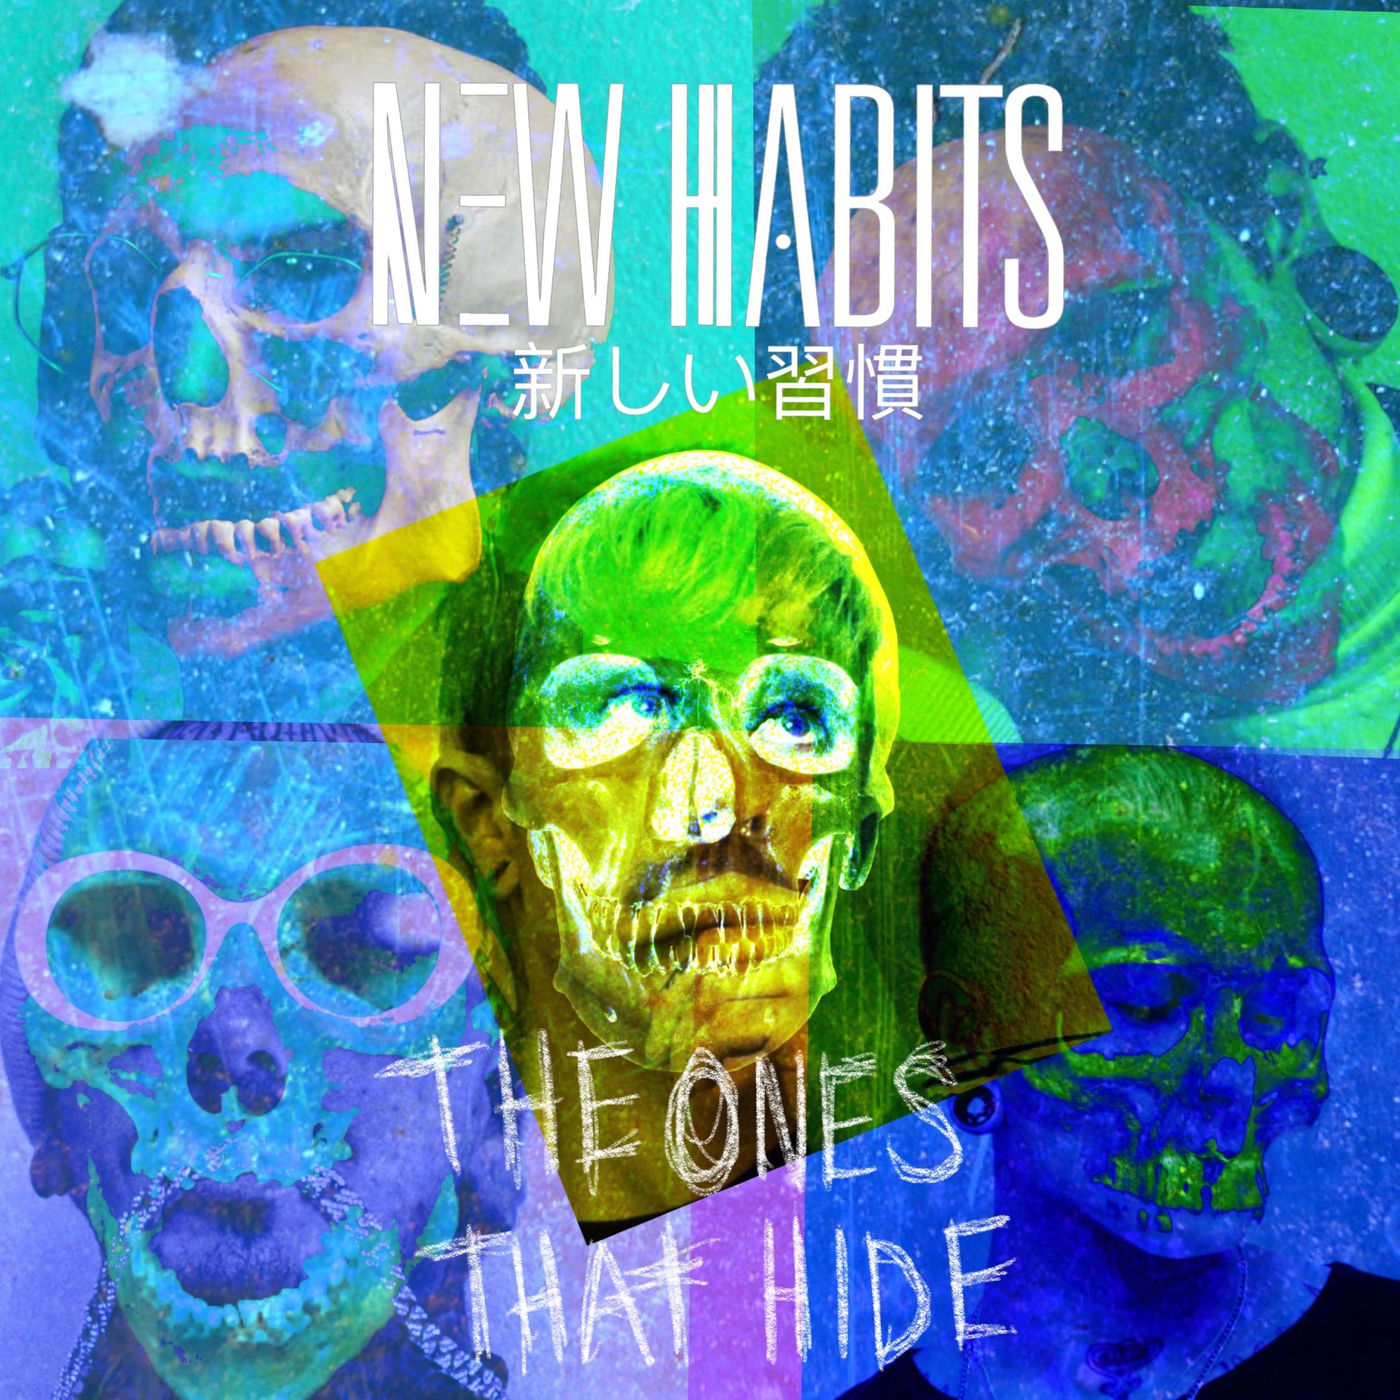 New Habits - The Ones That Hide [single] (2020)